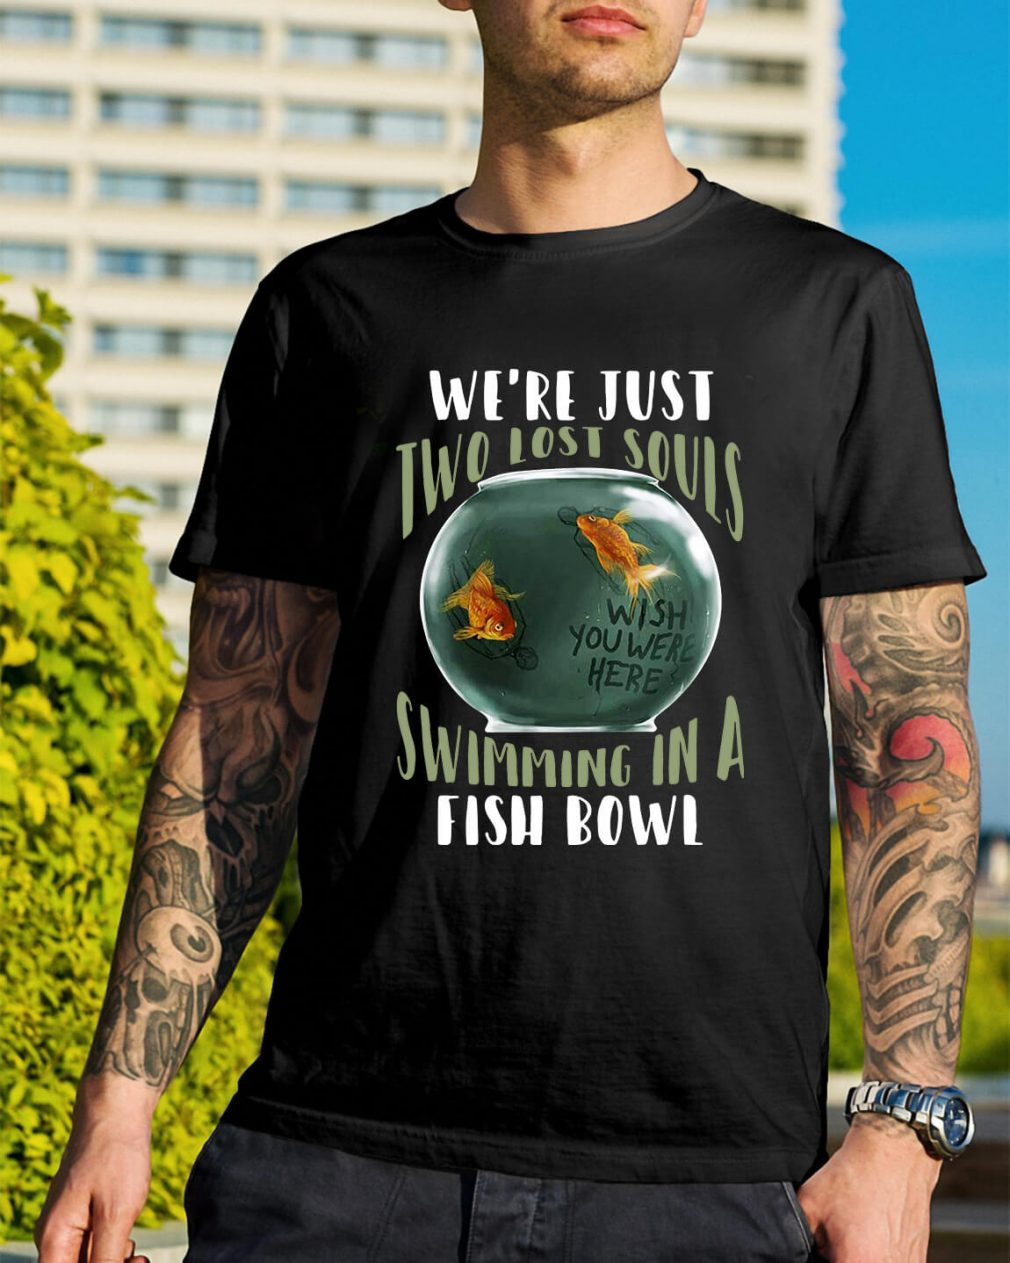 We're just two lost souls swimming in a fishbowl shirt